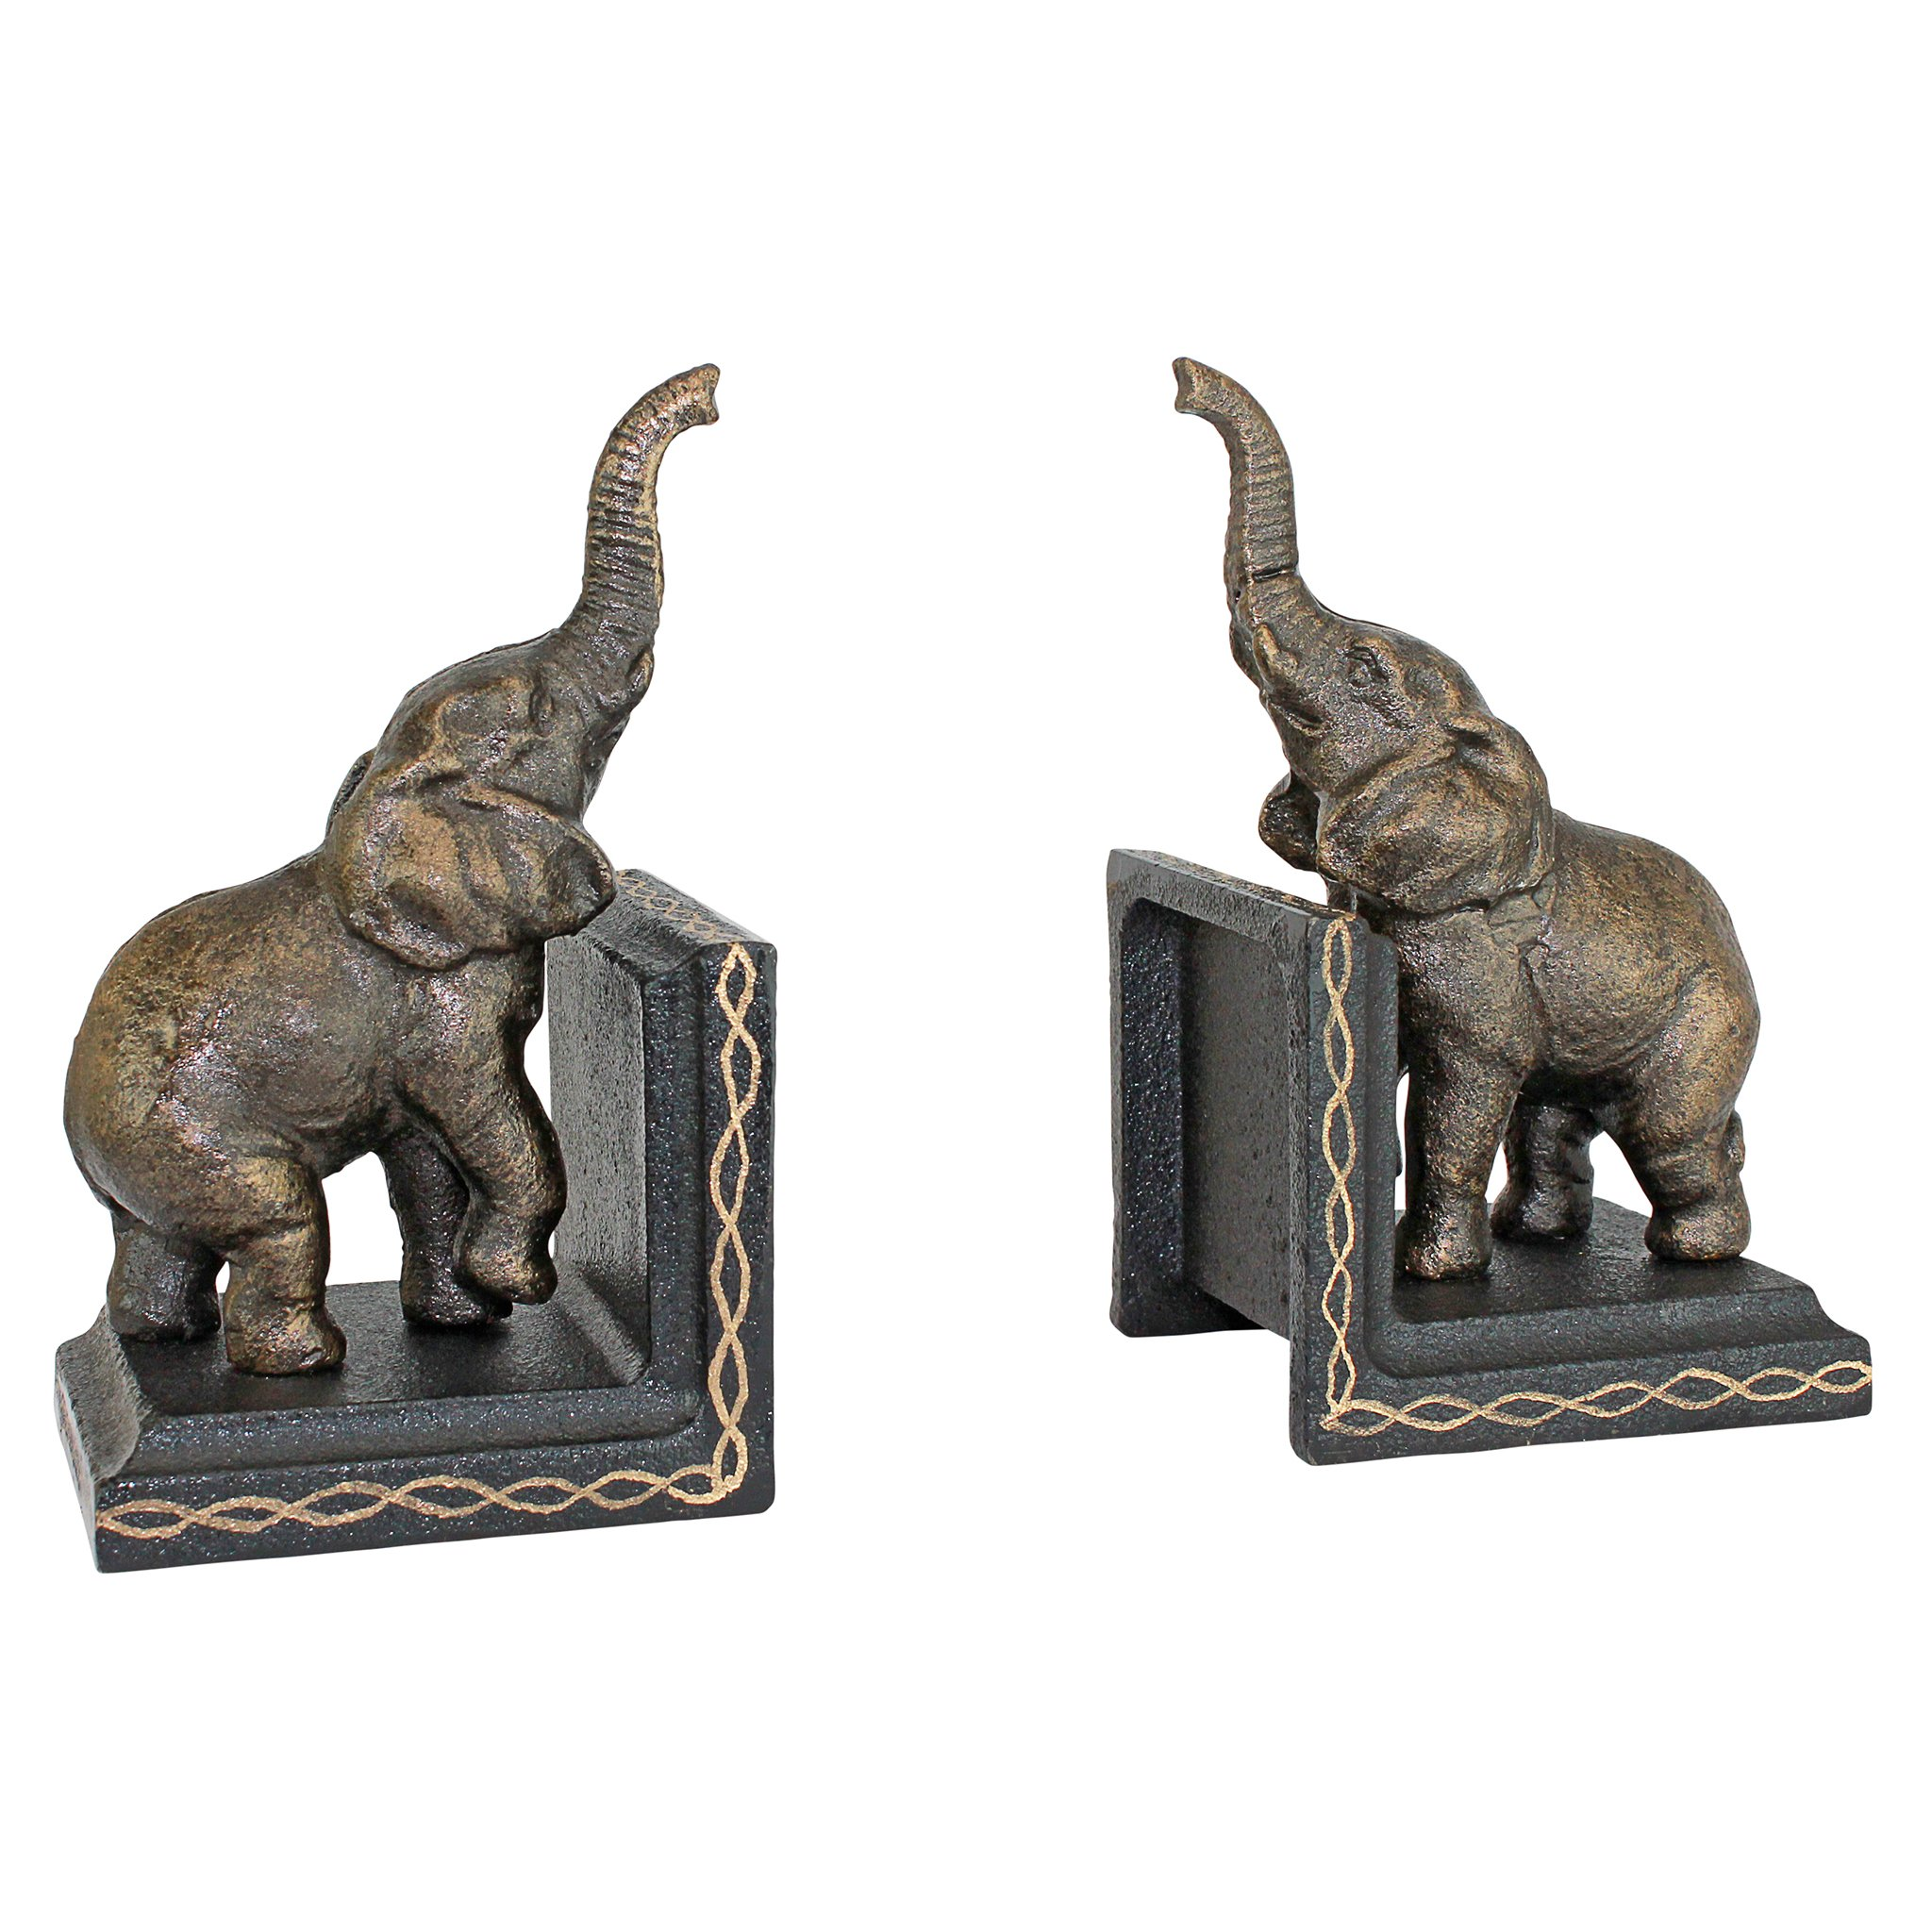 Design Toscano Triumphant Elephant Cast Iron Sculptural Bookend Pair, Gold